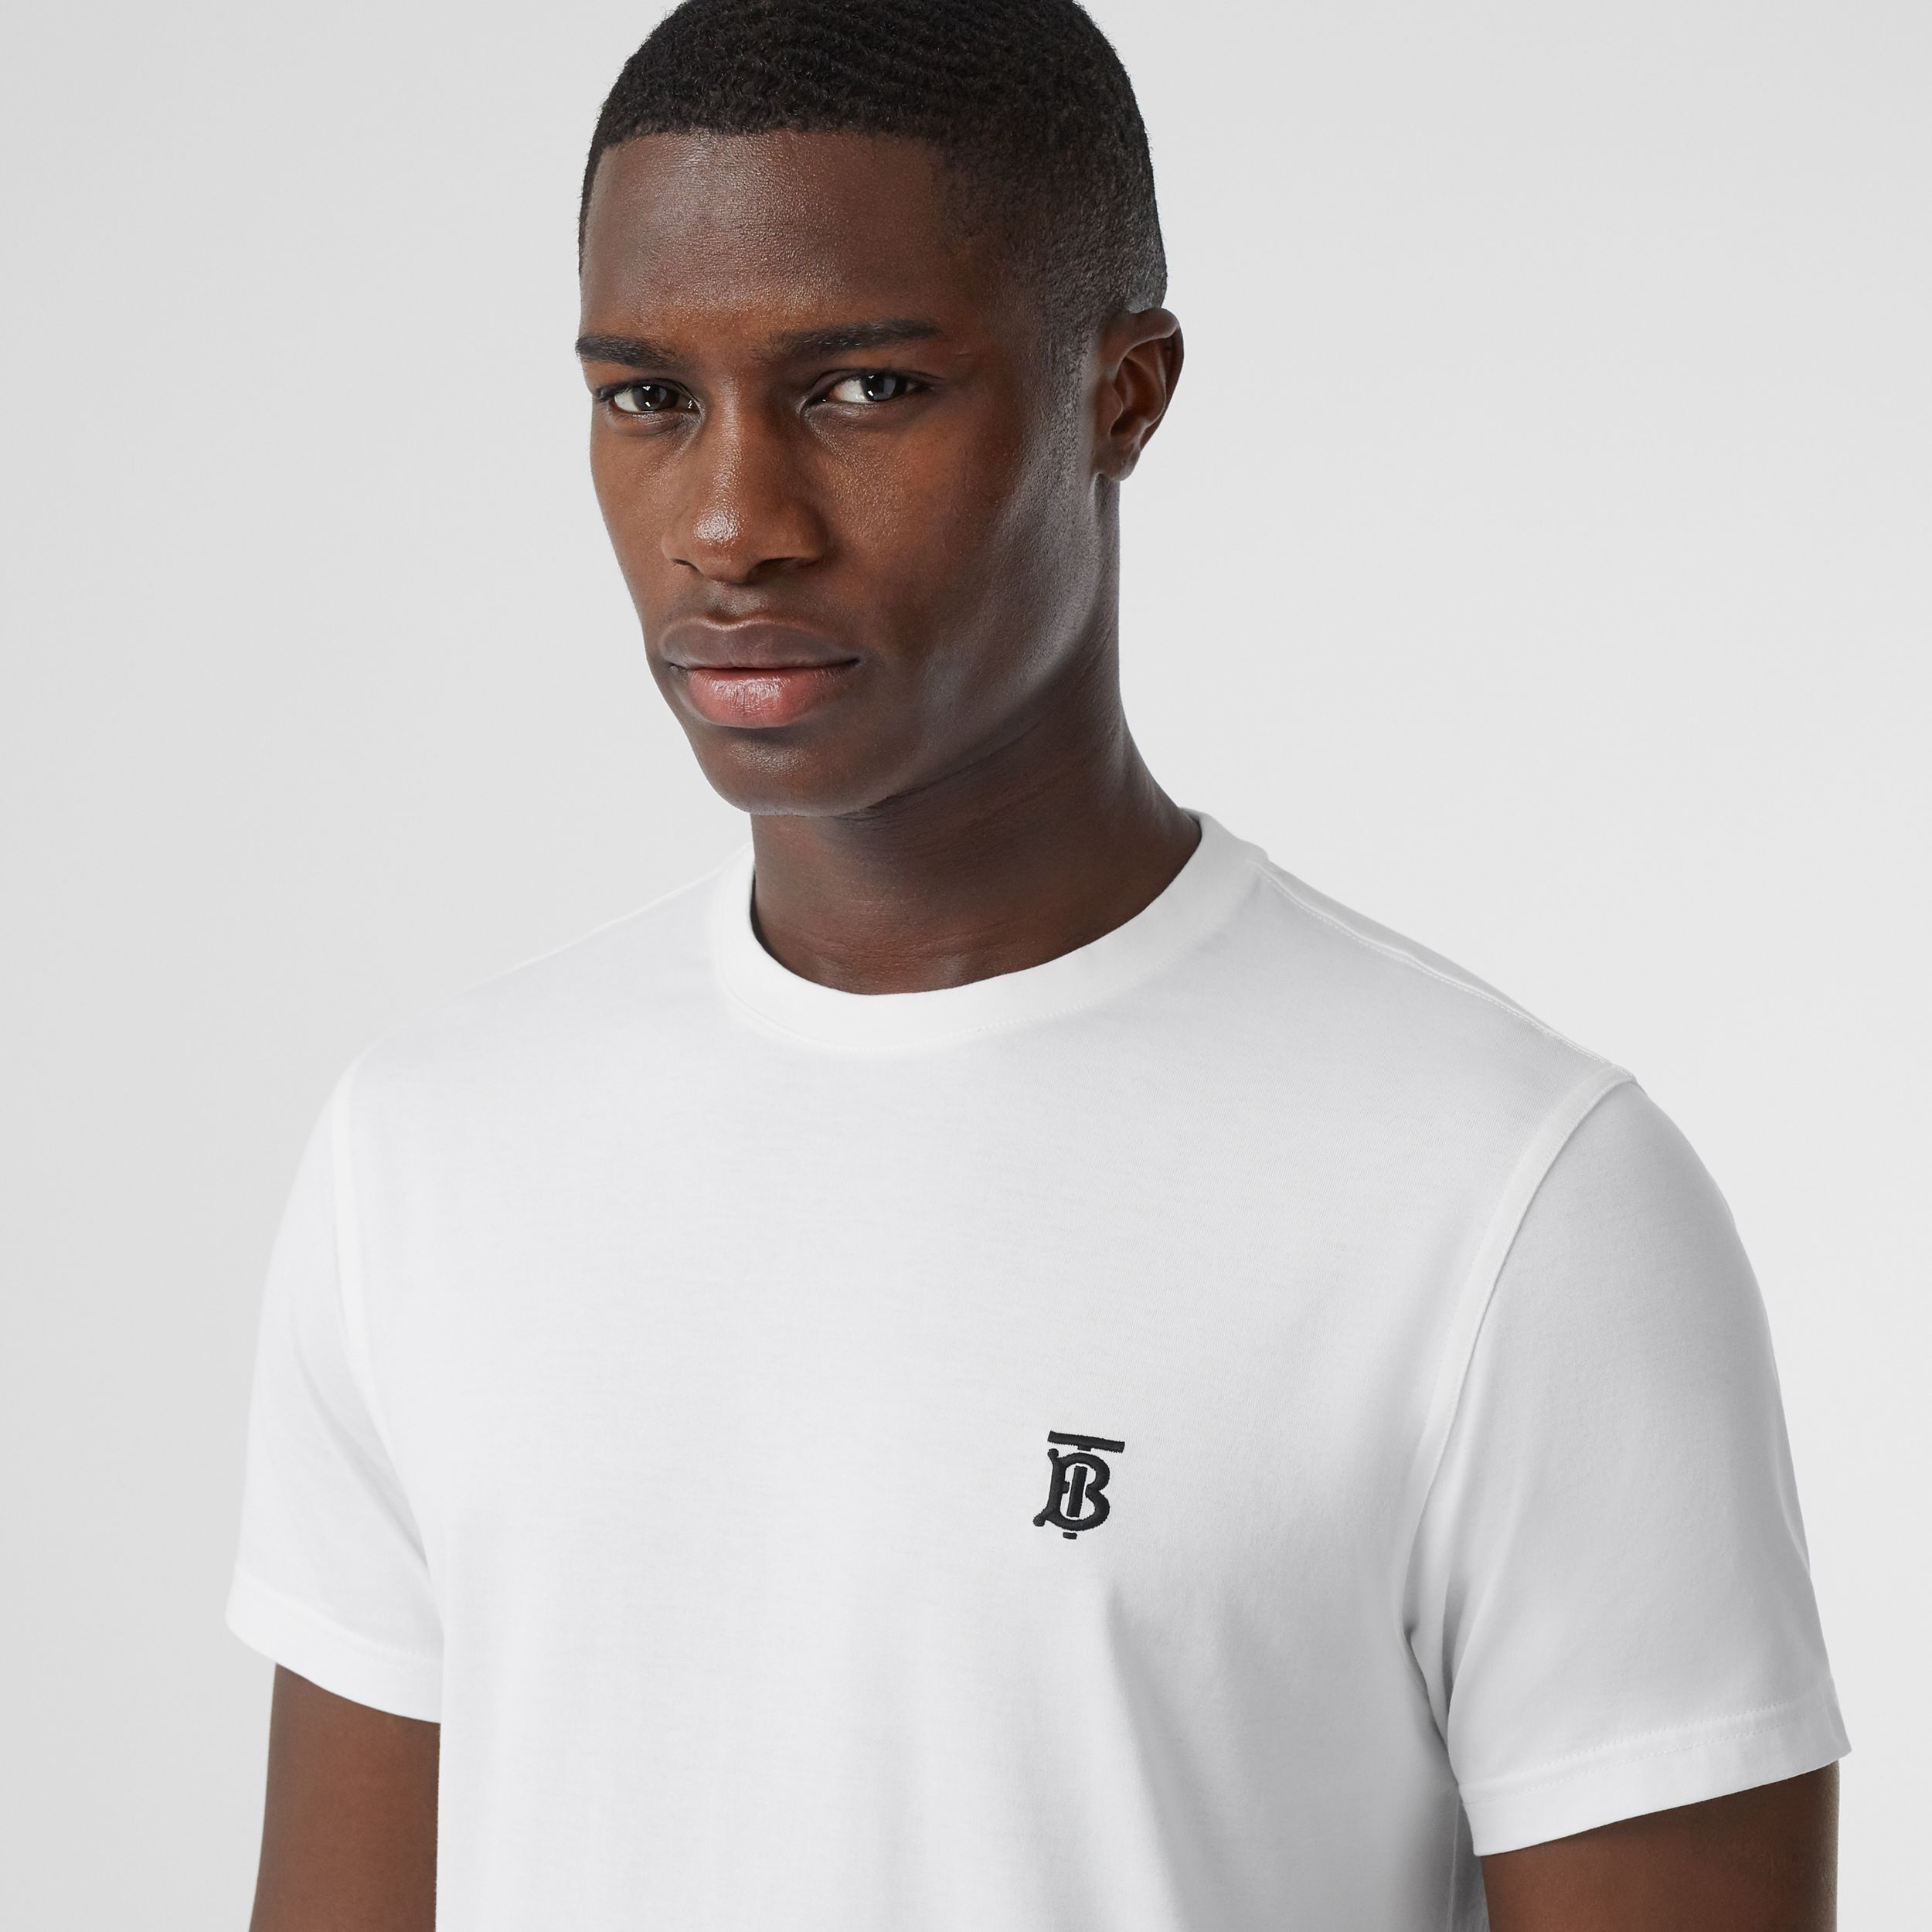 Monogram Motif Cotton T-shirt in White - Men | Burberry Hong Kong S.A.R. - 2